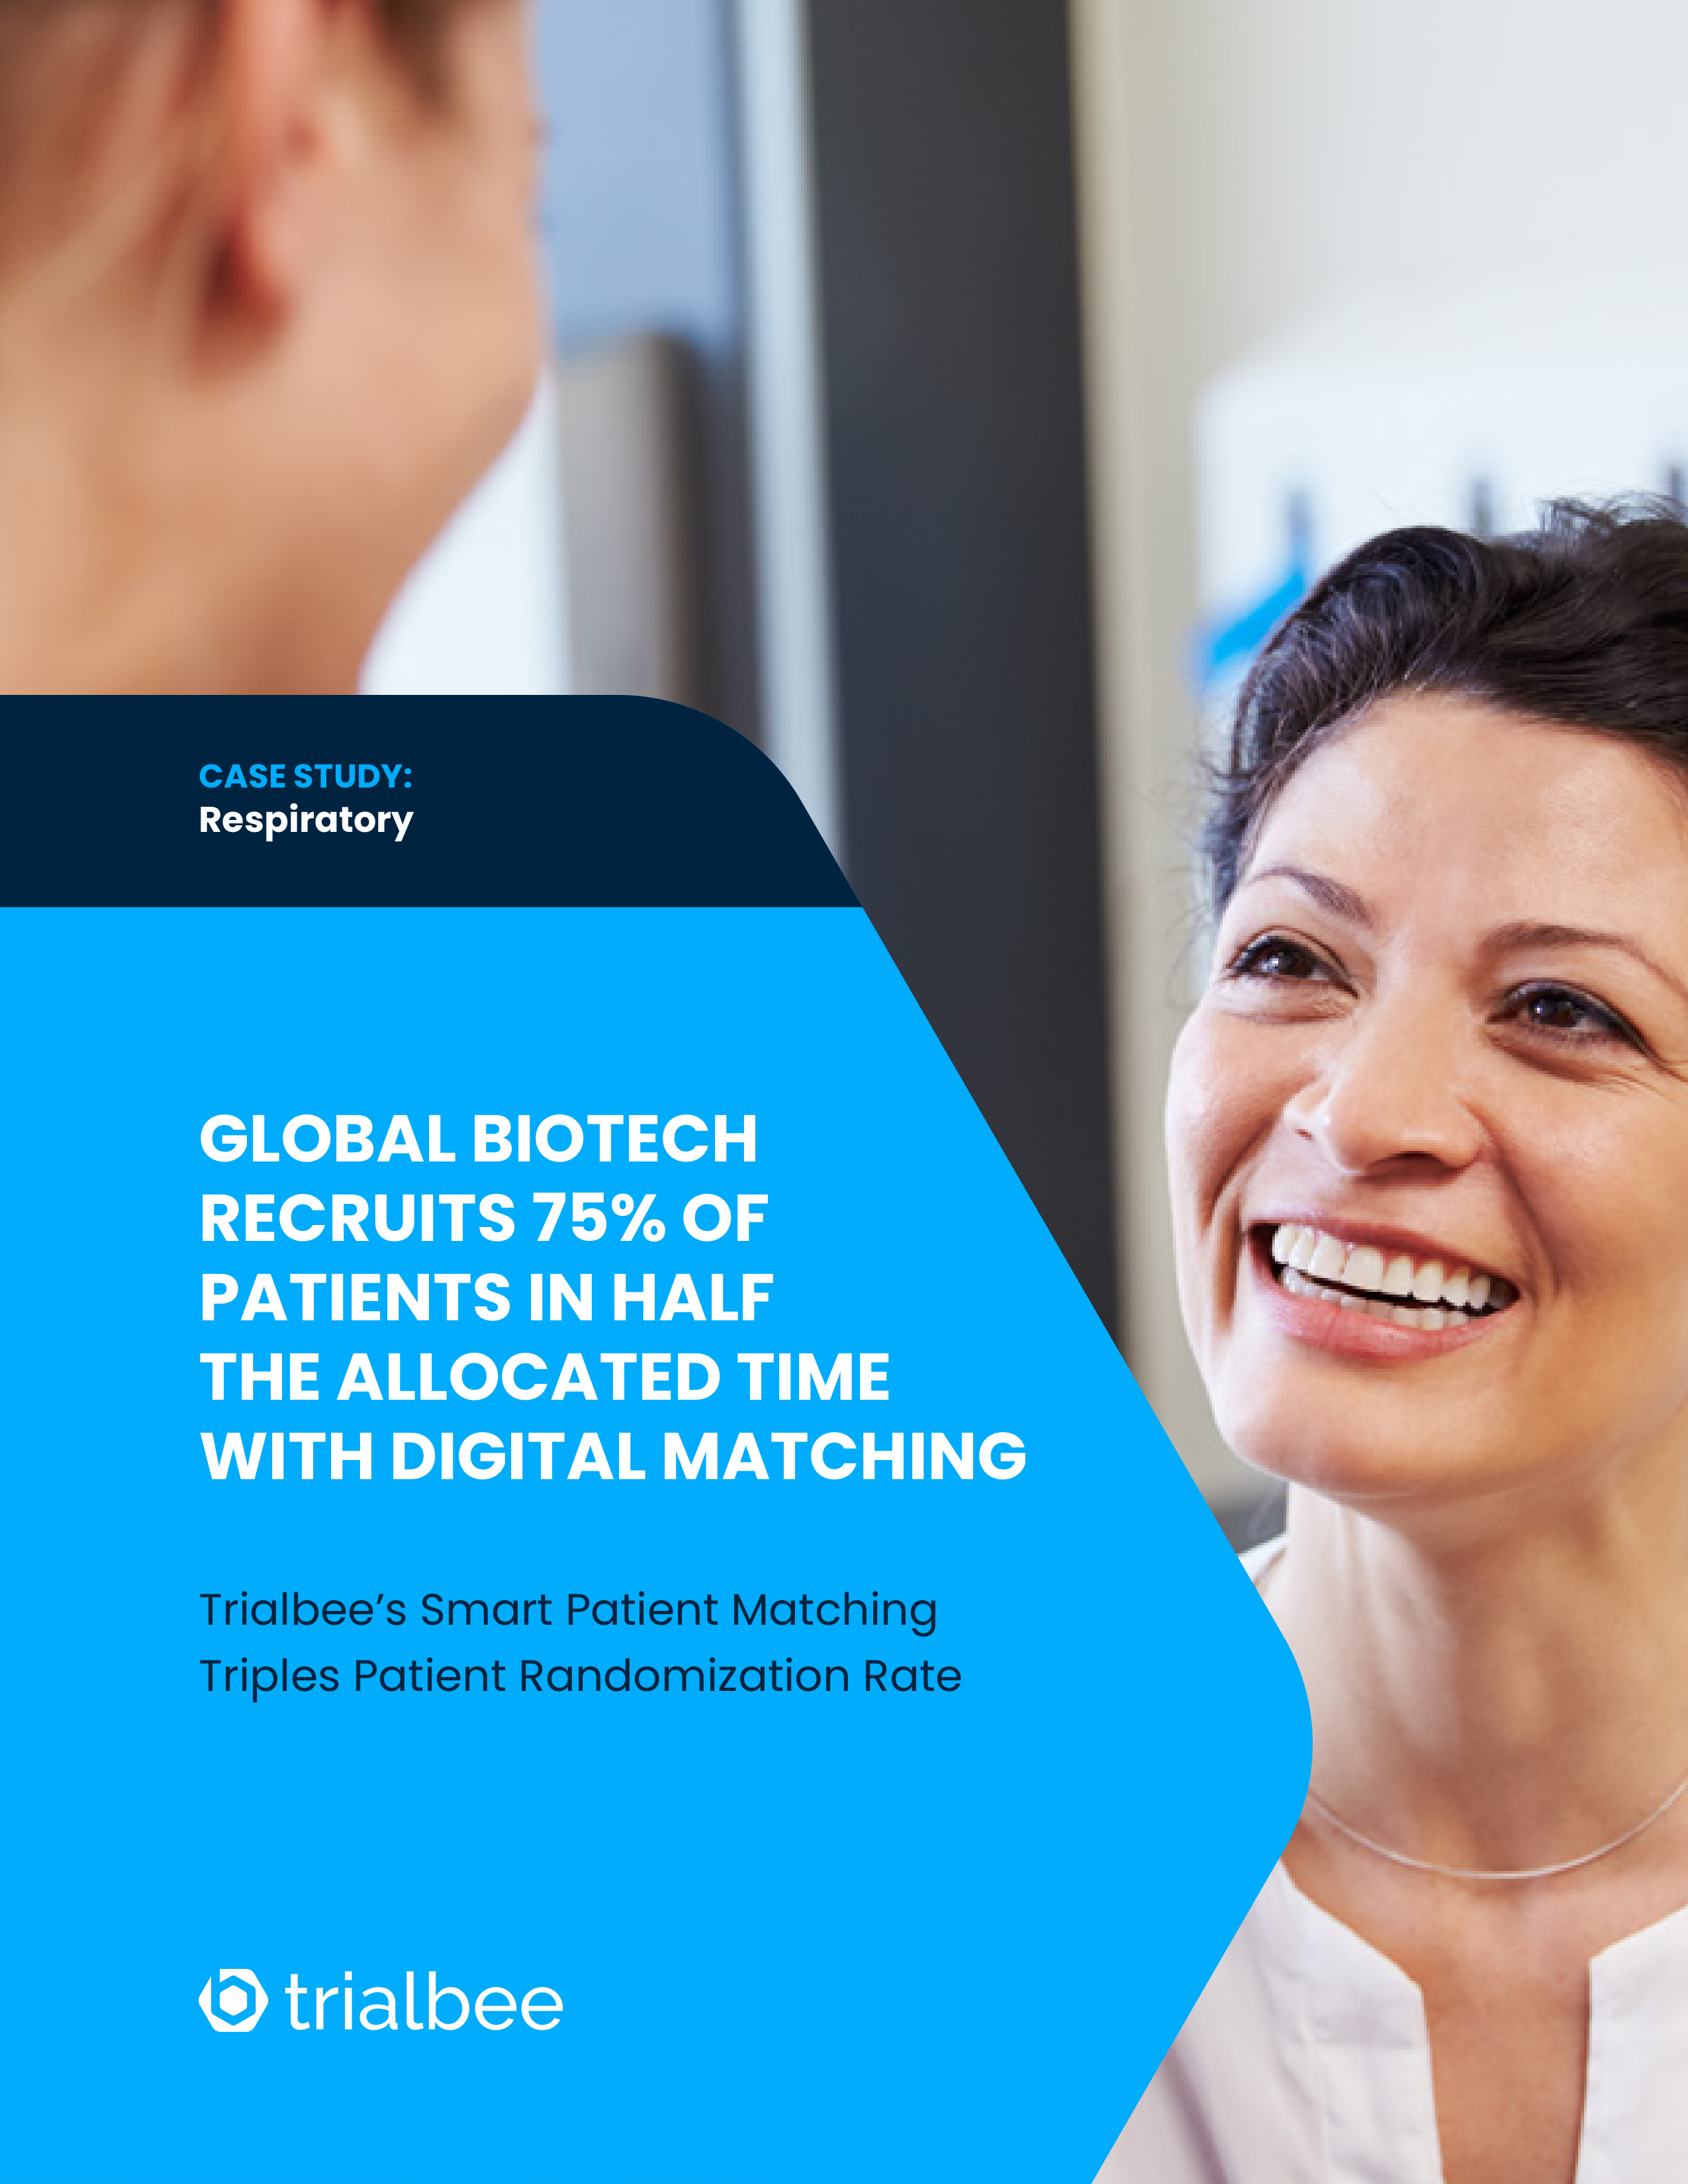 Global Biotech Recruits 75% of Patients in Half the Allocated Time with Digital Matching